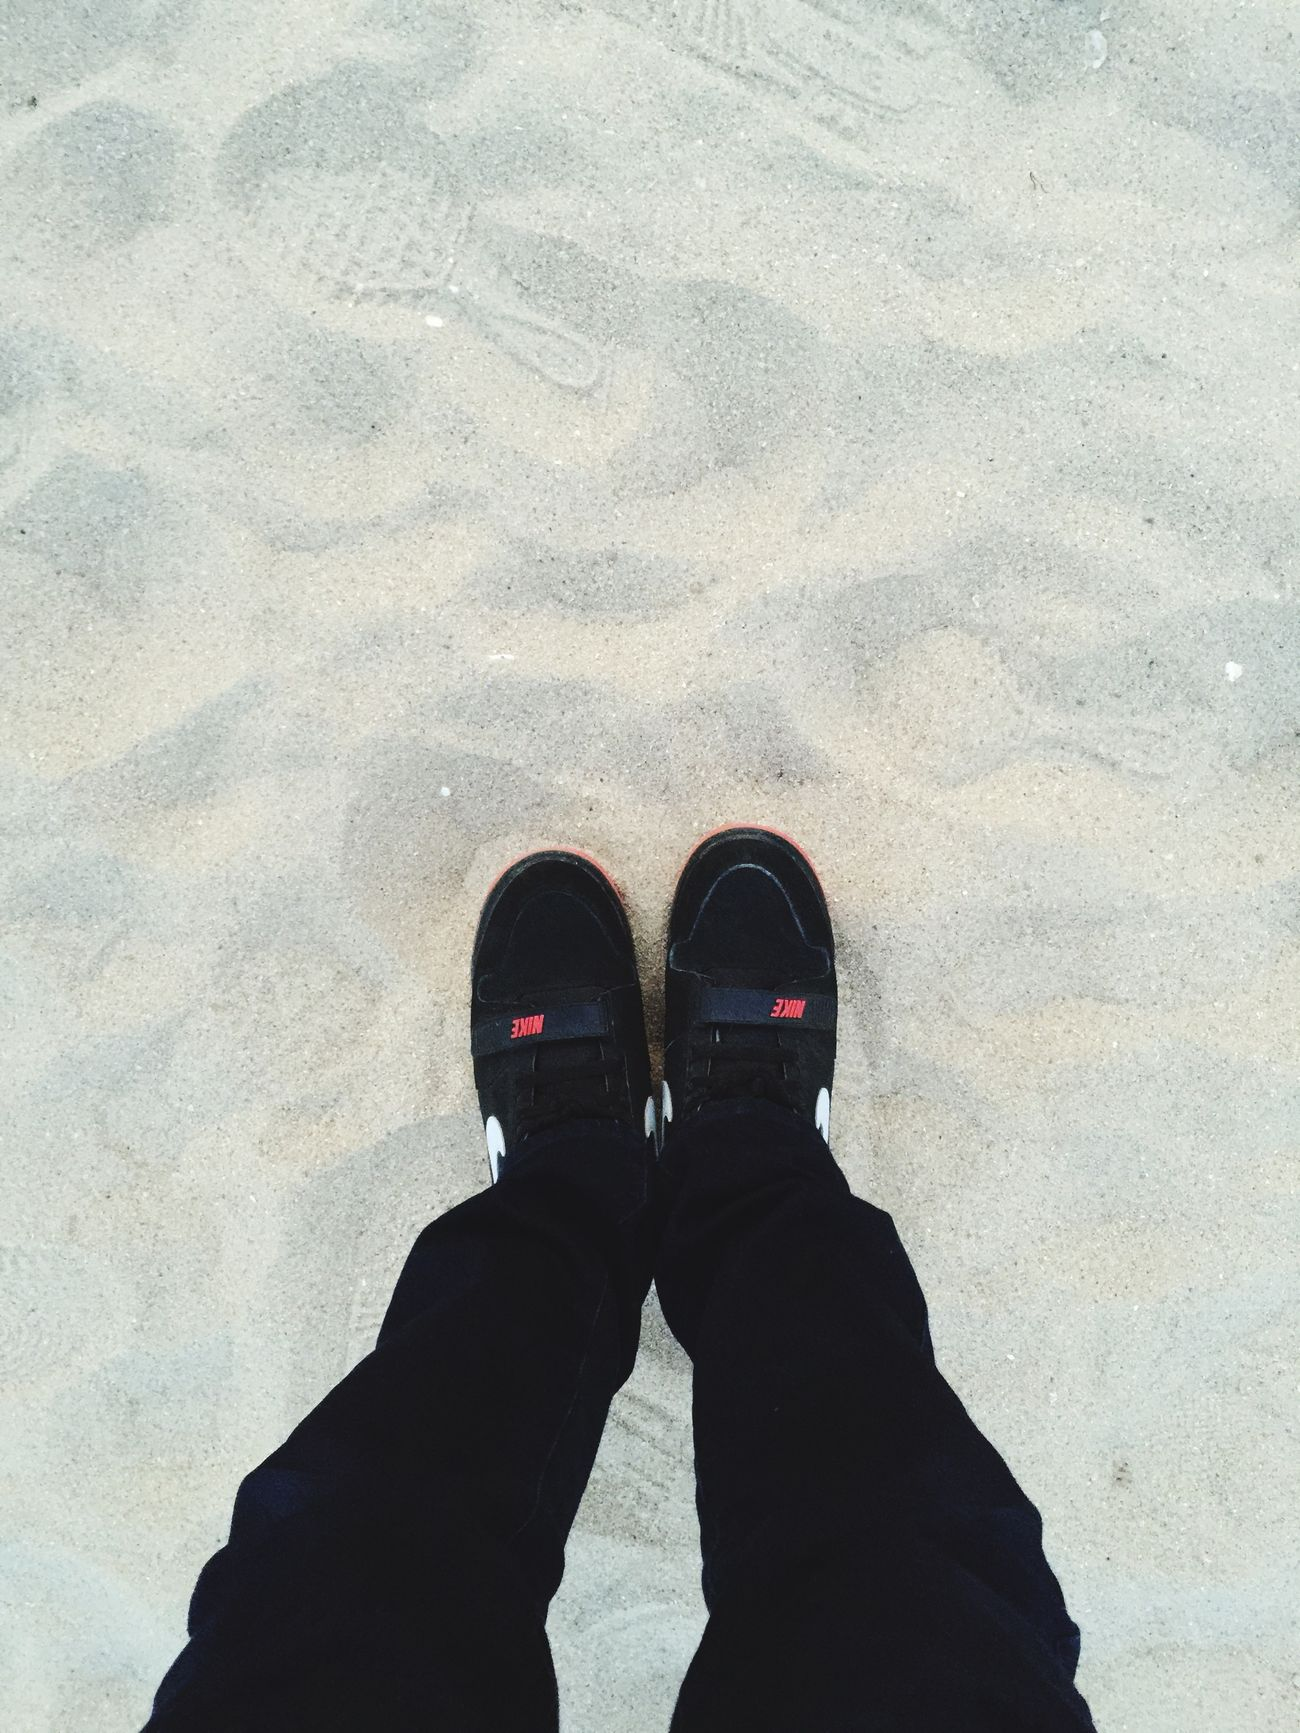 Iphone6plus IPhoneography Traveling In Busan Beach Photography Sand Springtime April Relaxing Sea